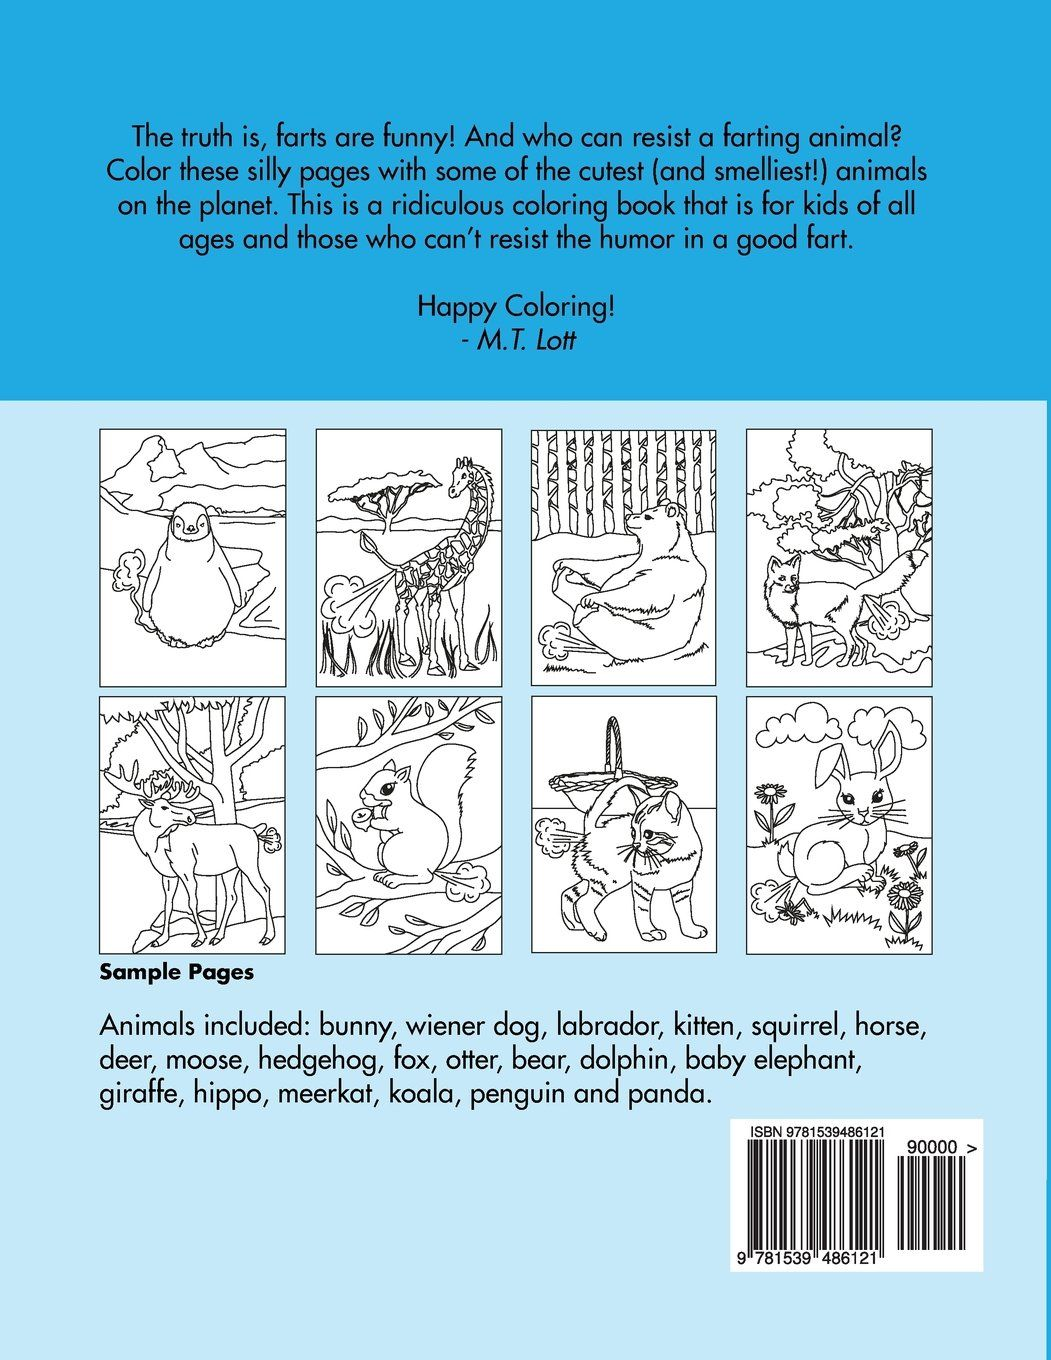 12+ Farting animals coloring book ideas in 2021